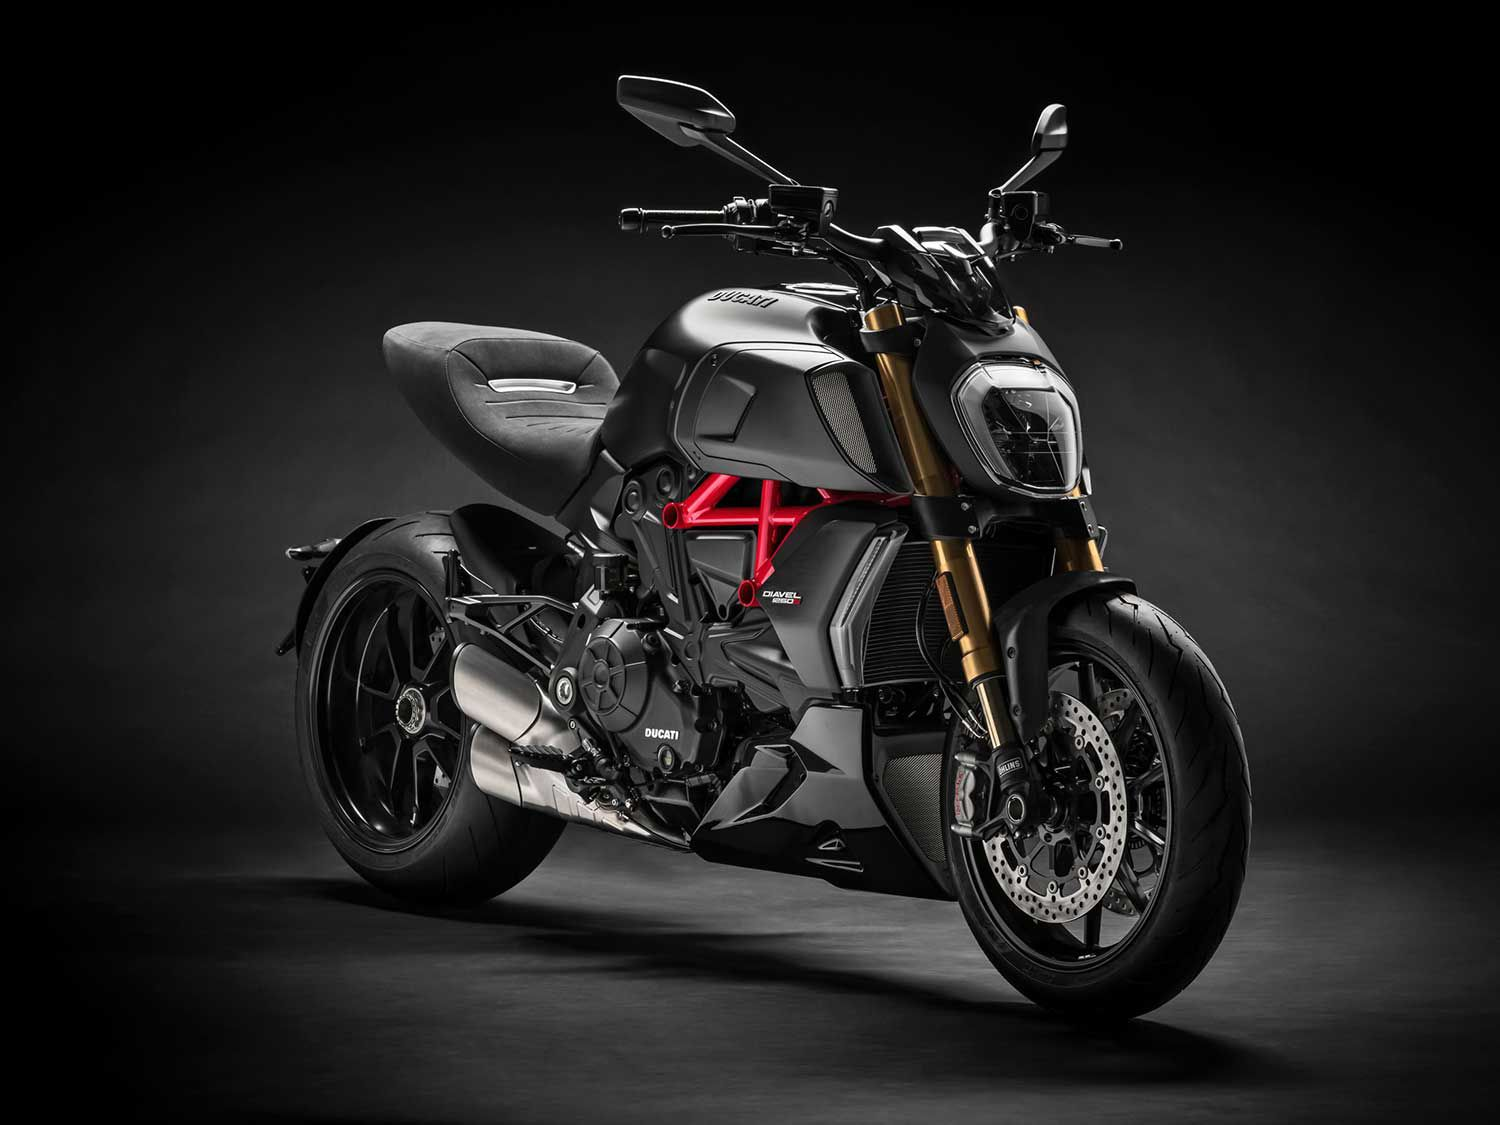 The Ducati Diavel 1260 S rolls with a Testastretta DVT 1262 engine and an edgier profile than its predecessor.